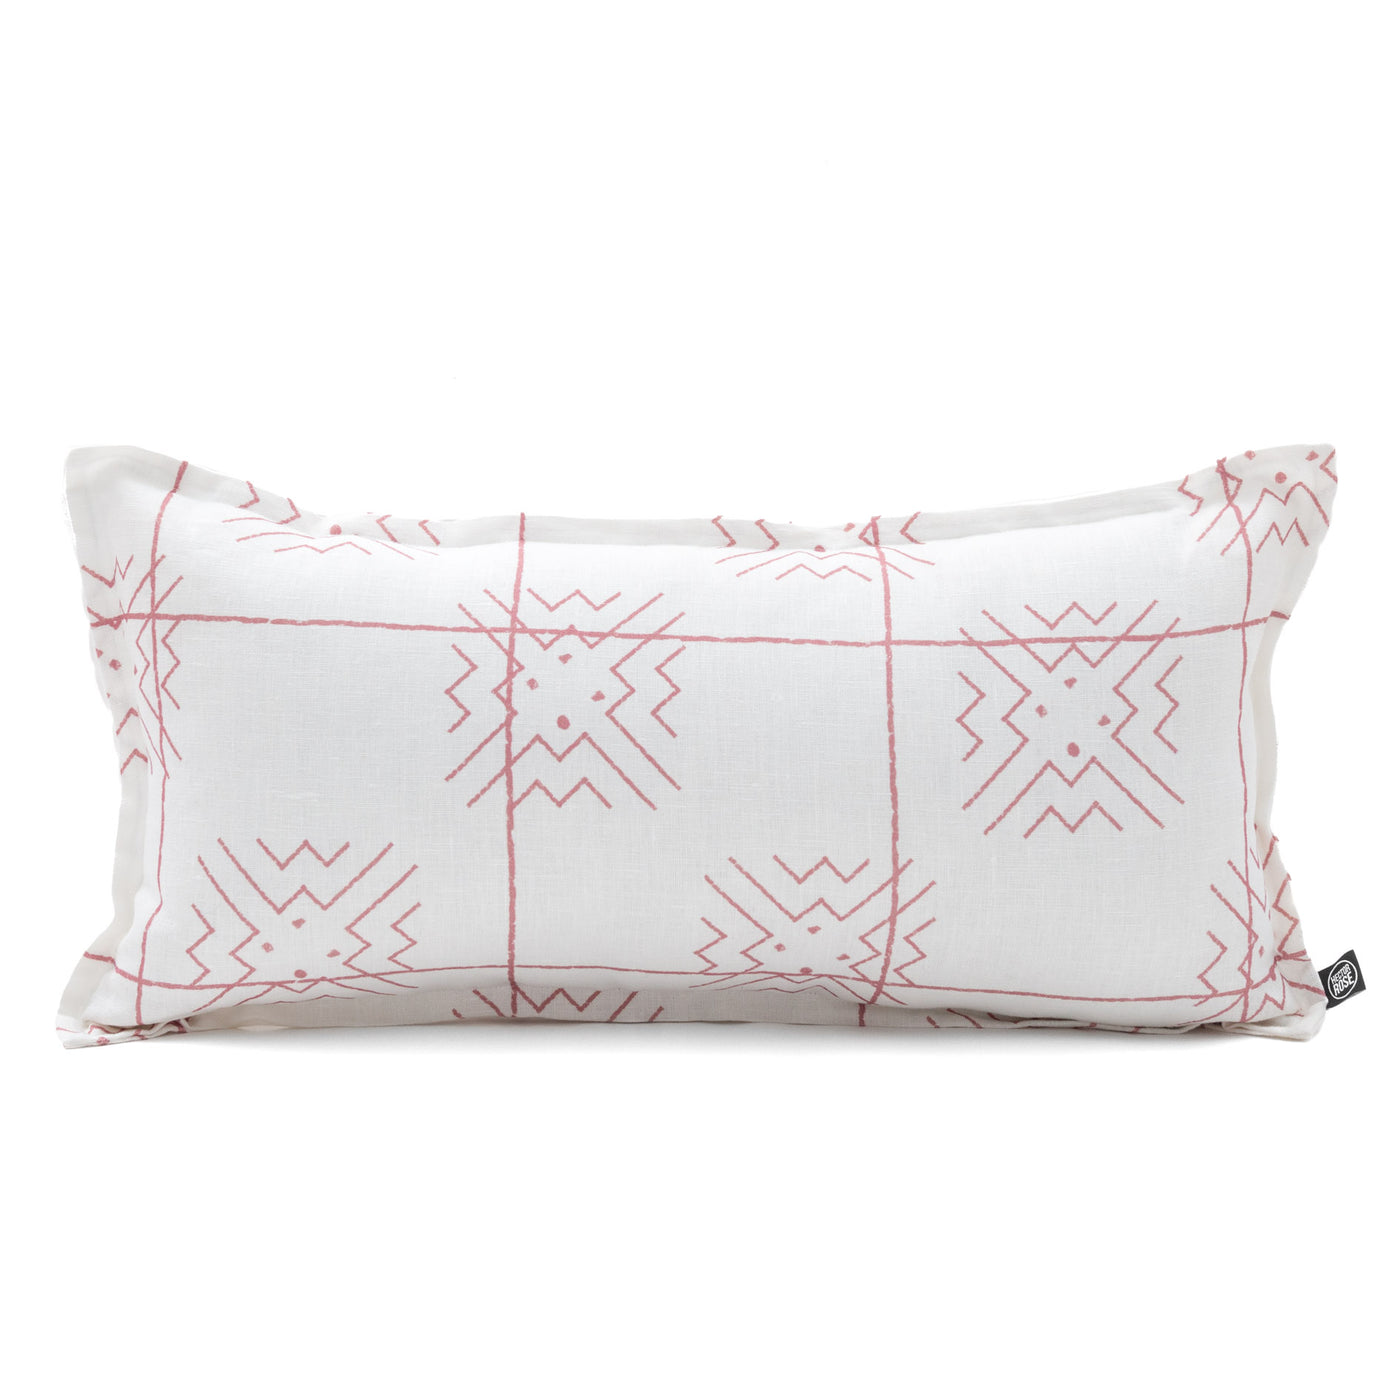 pink and white mudcloth linen cushion Australian made